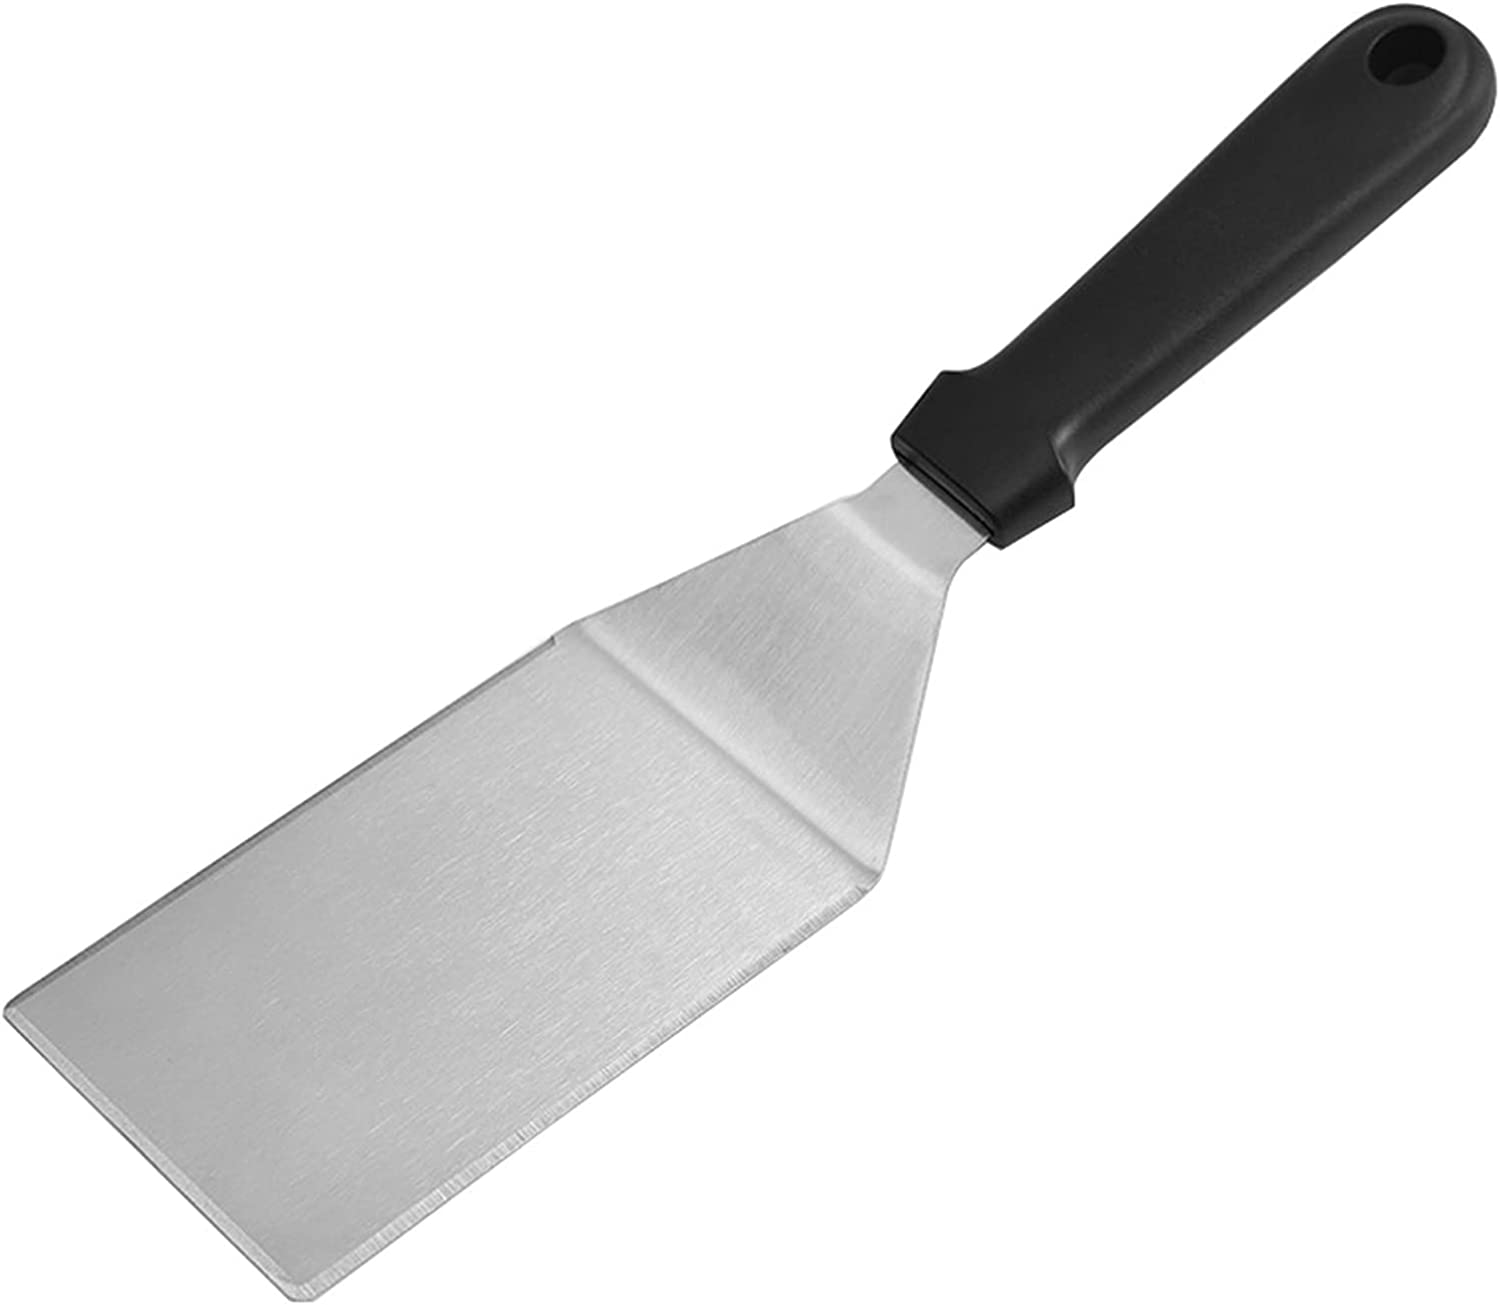 Bitpure Latest item Professional Spatula - Stainless Steel an Turner Pancake Same day shipping